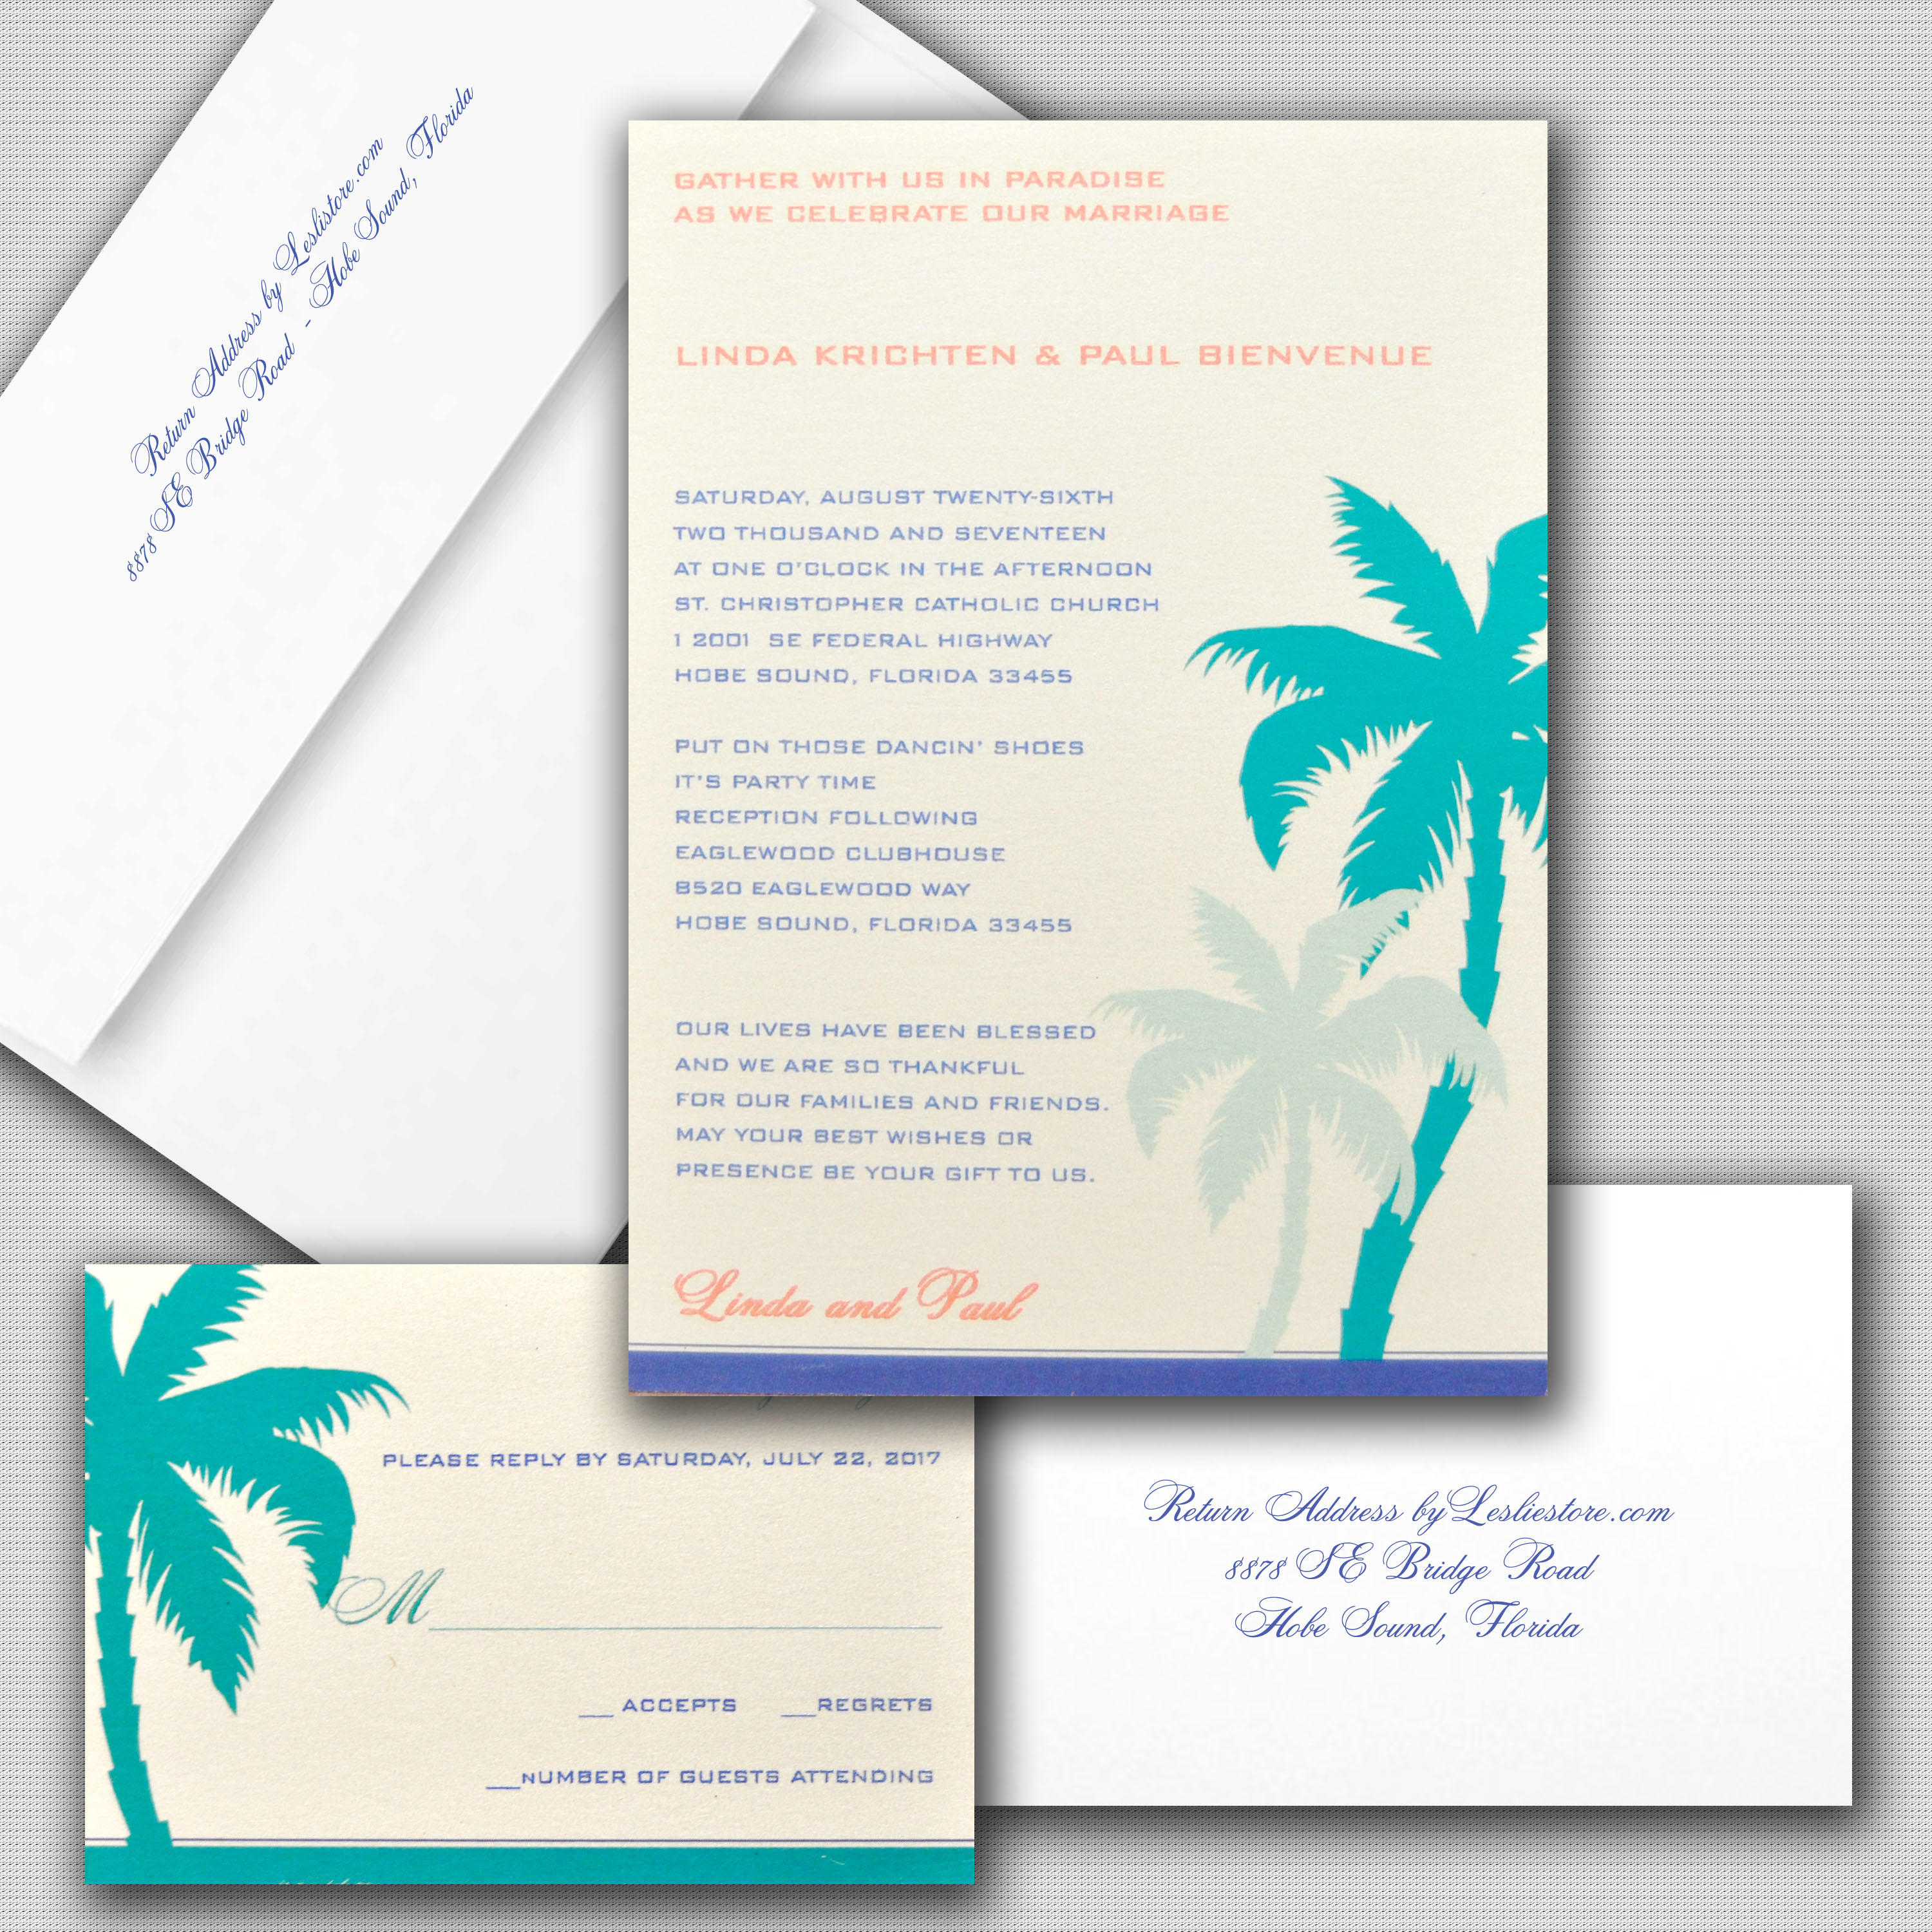 Leslie Store Wedding Invitations & Stationery image 5